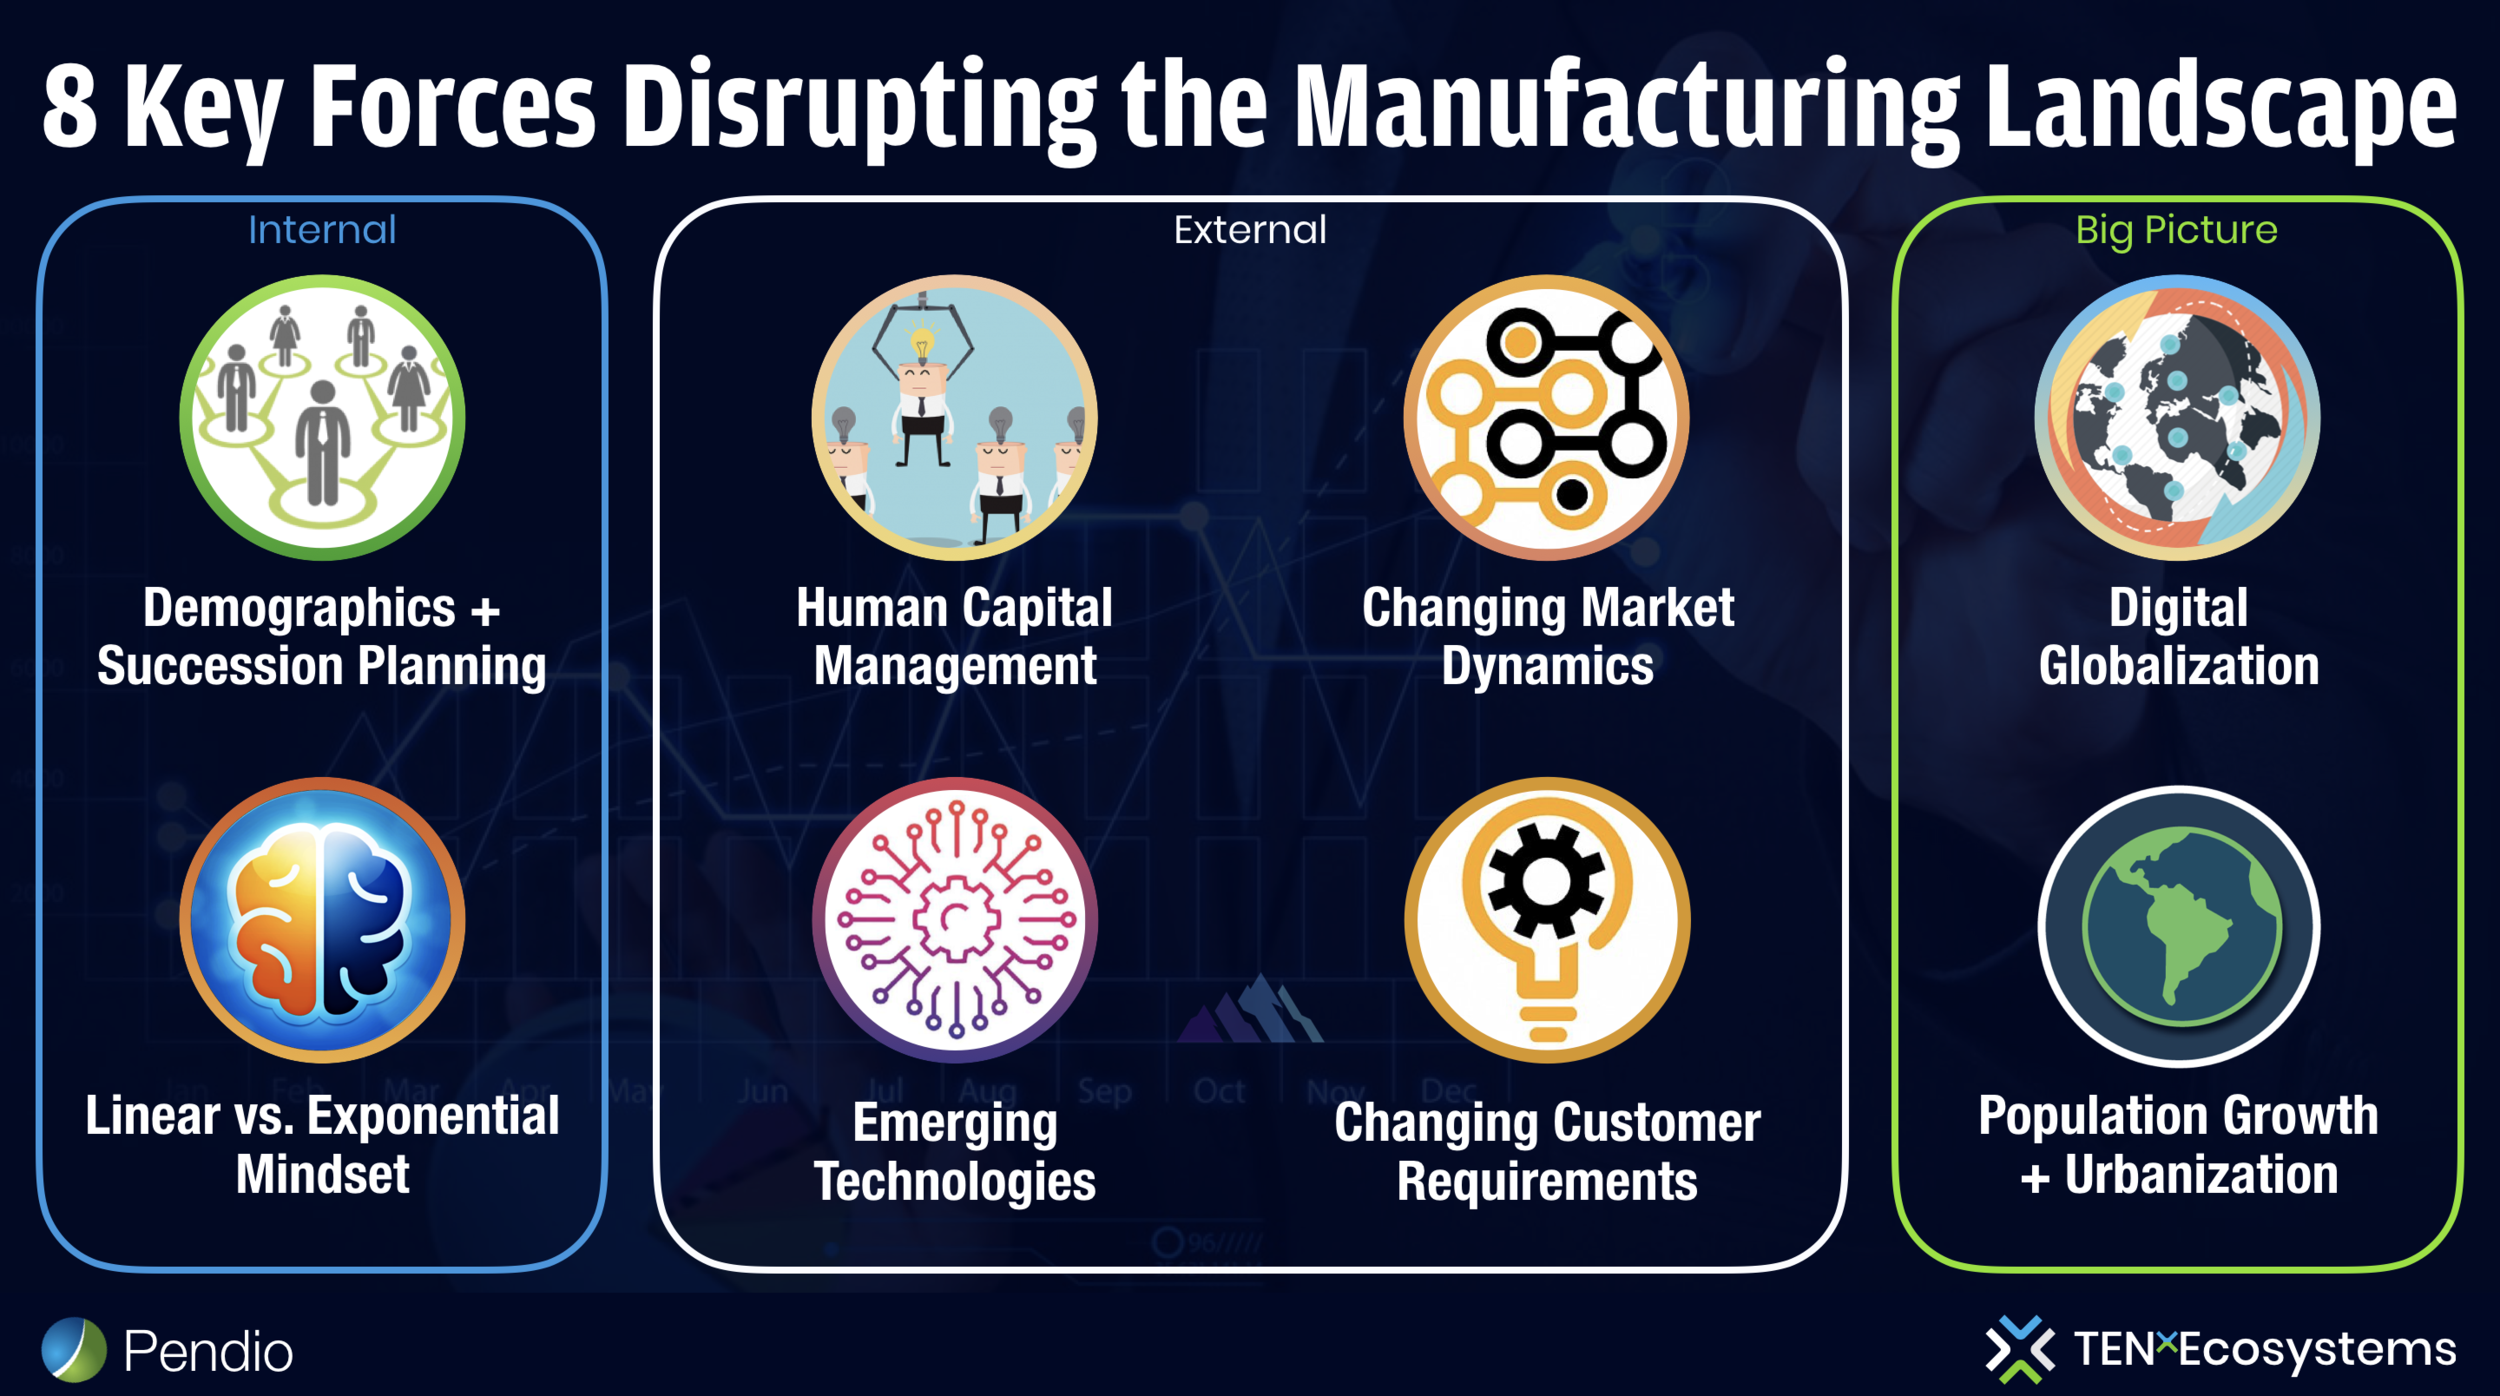 8 Forces of Disruption.png